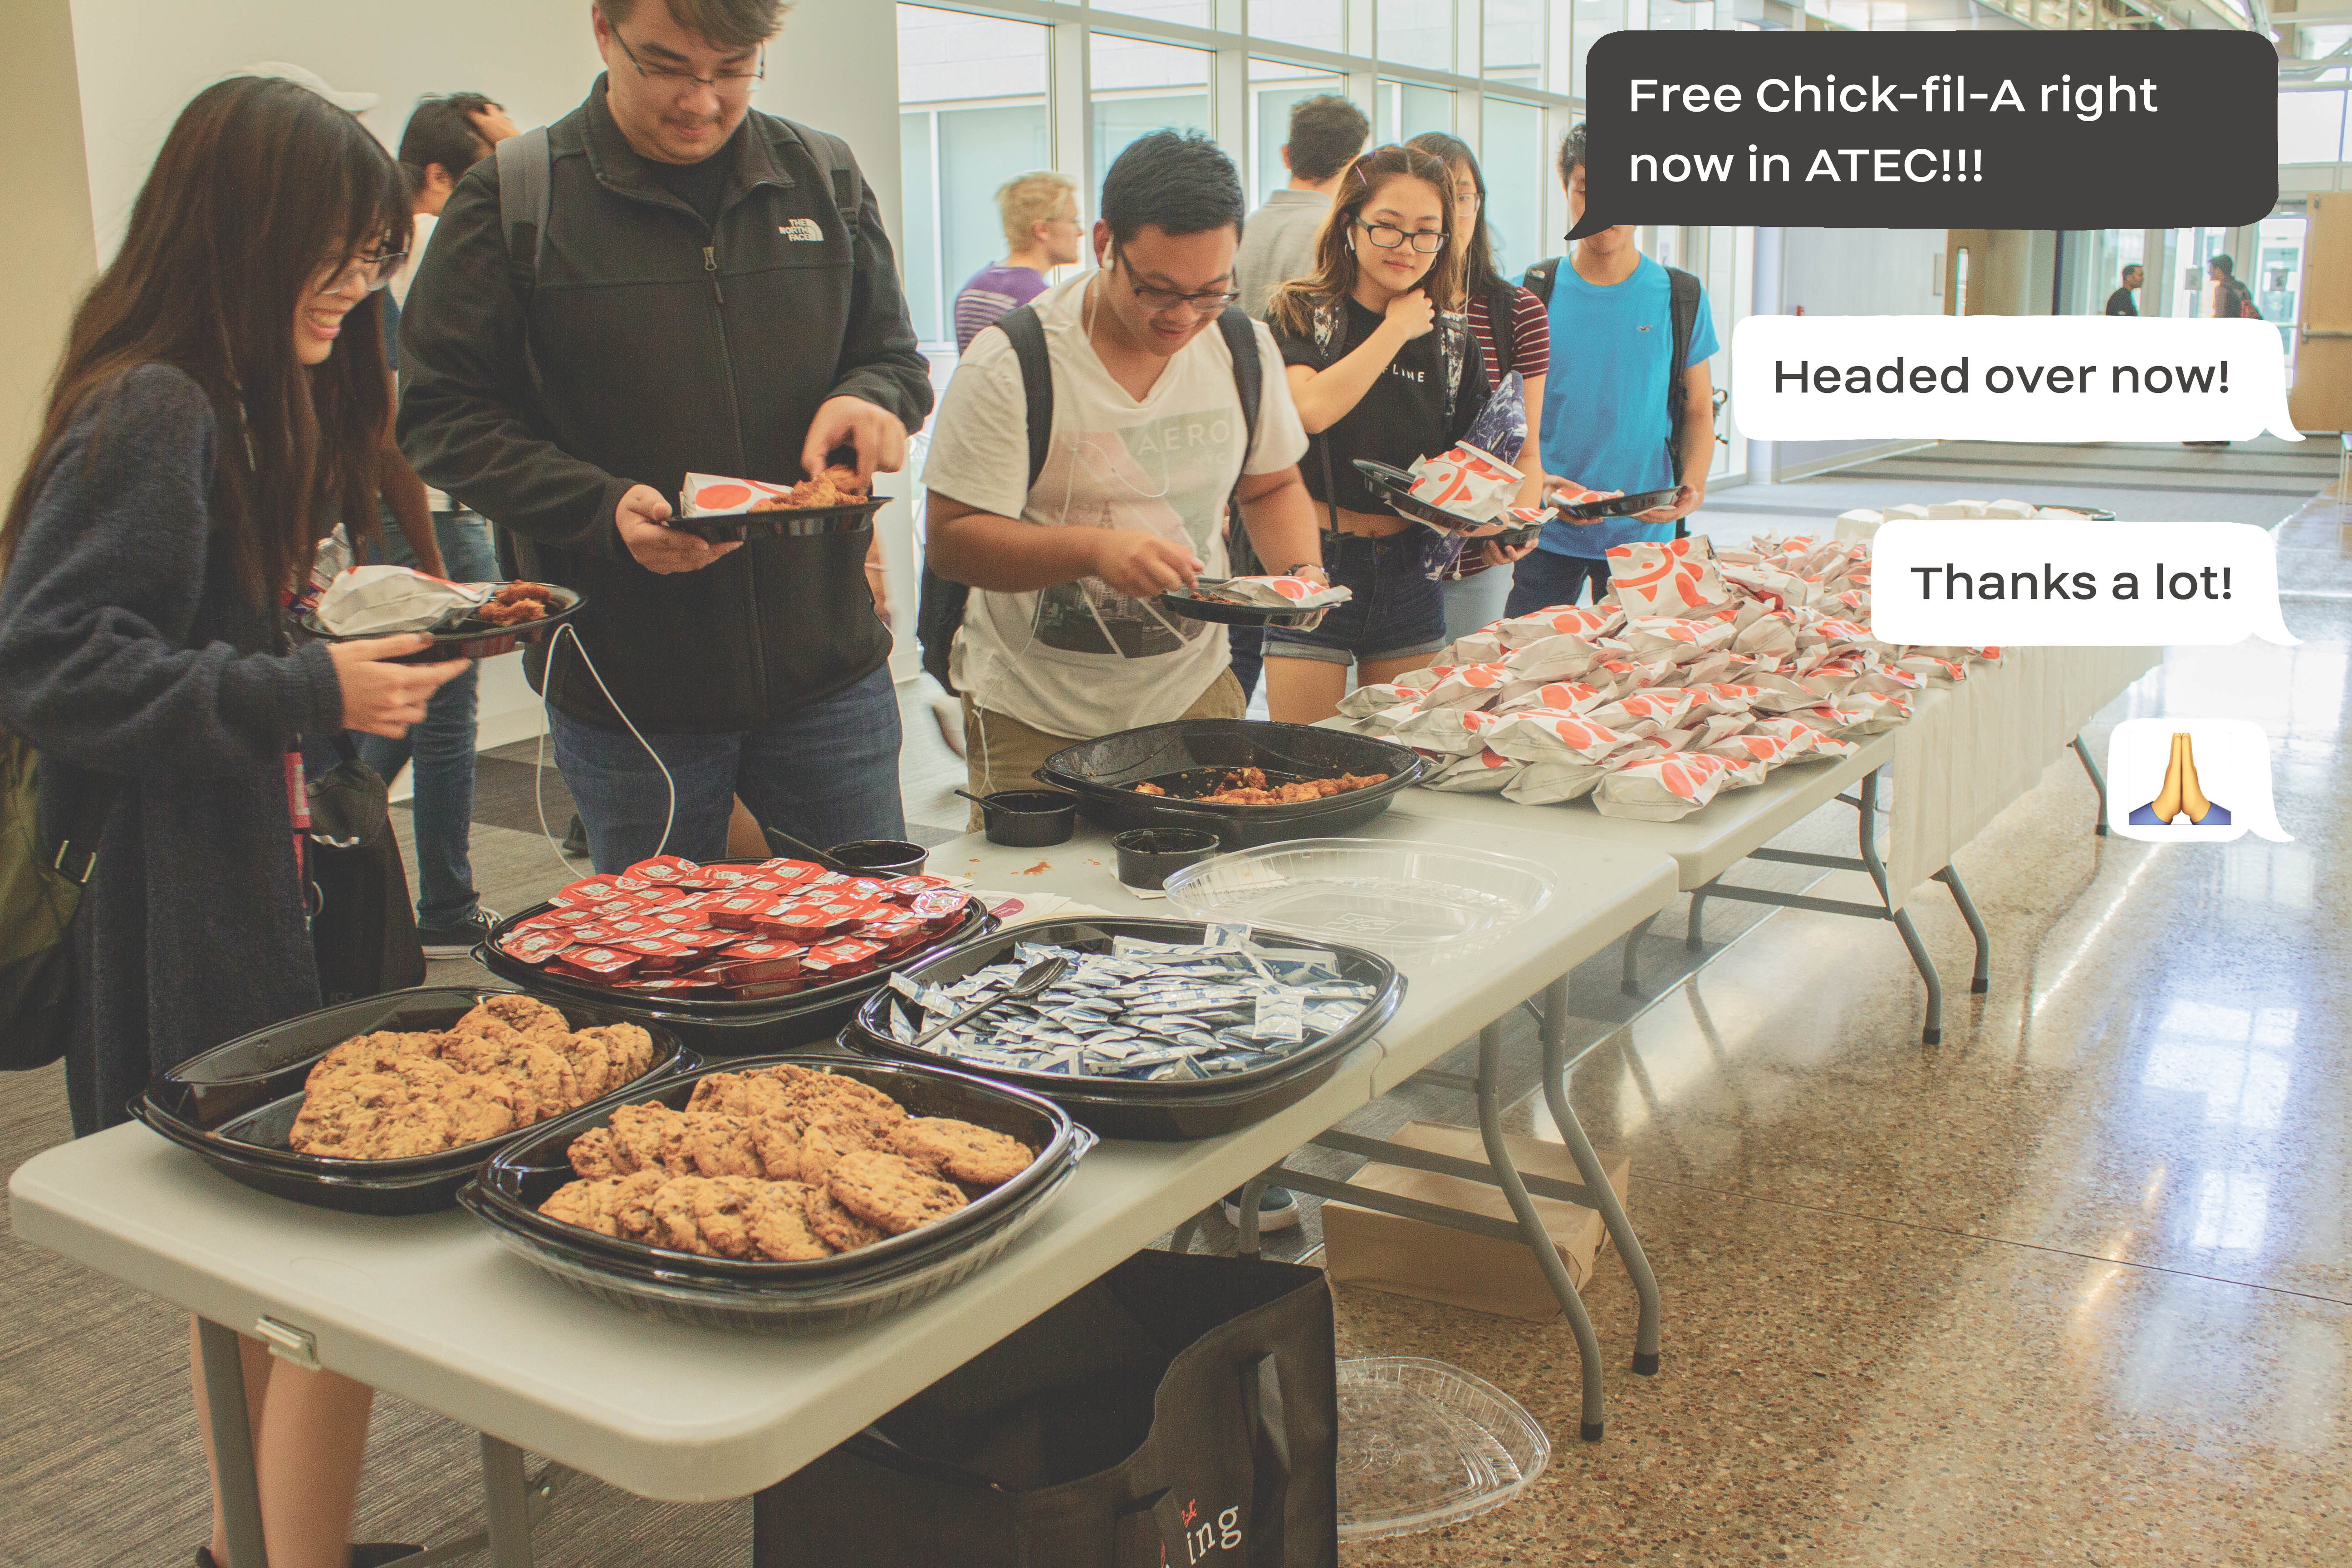 Students 'Finesse' Free Food using Community Chat